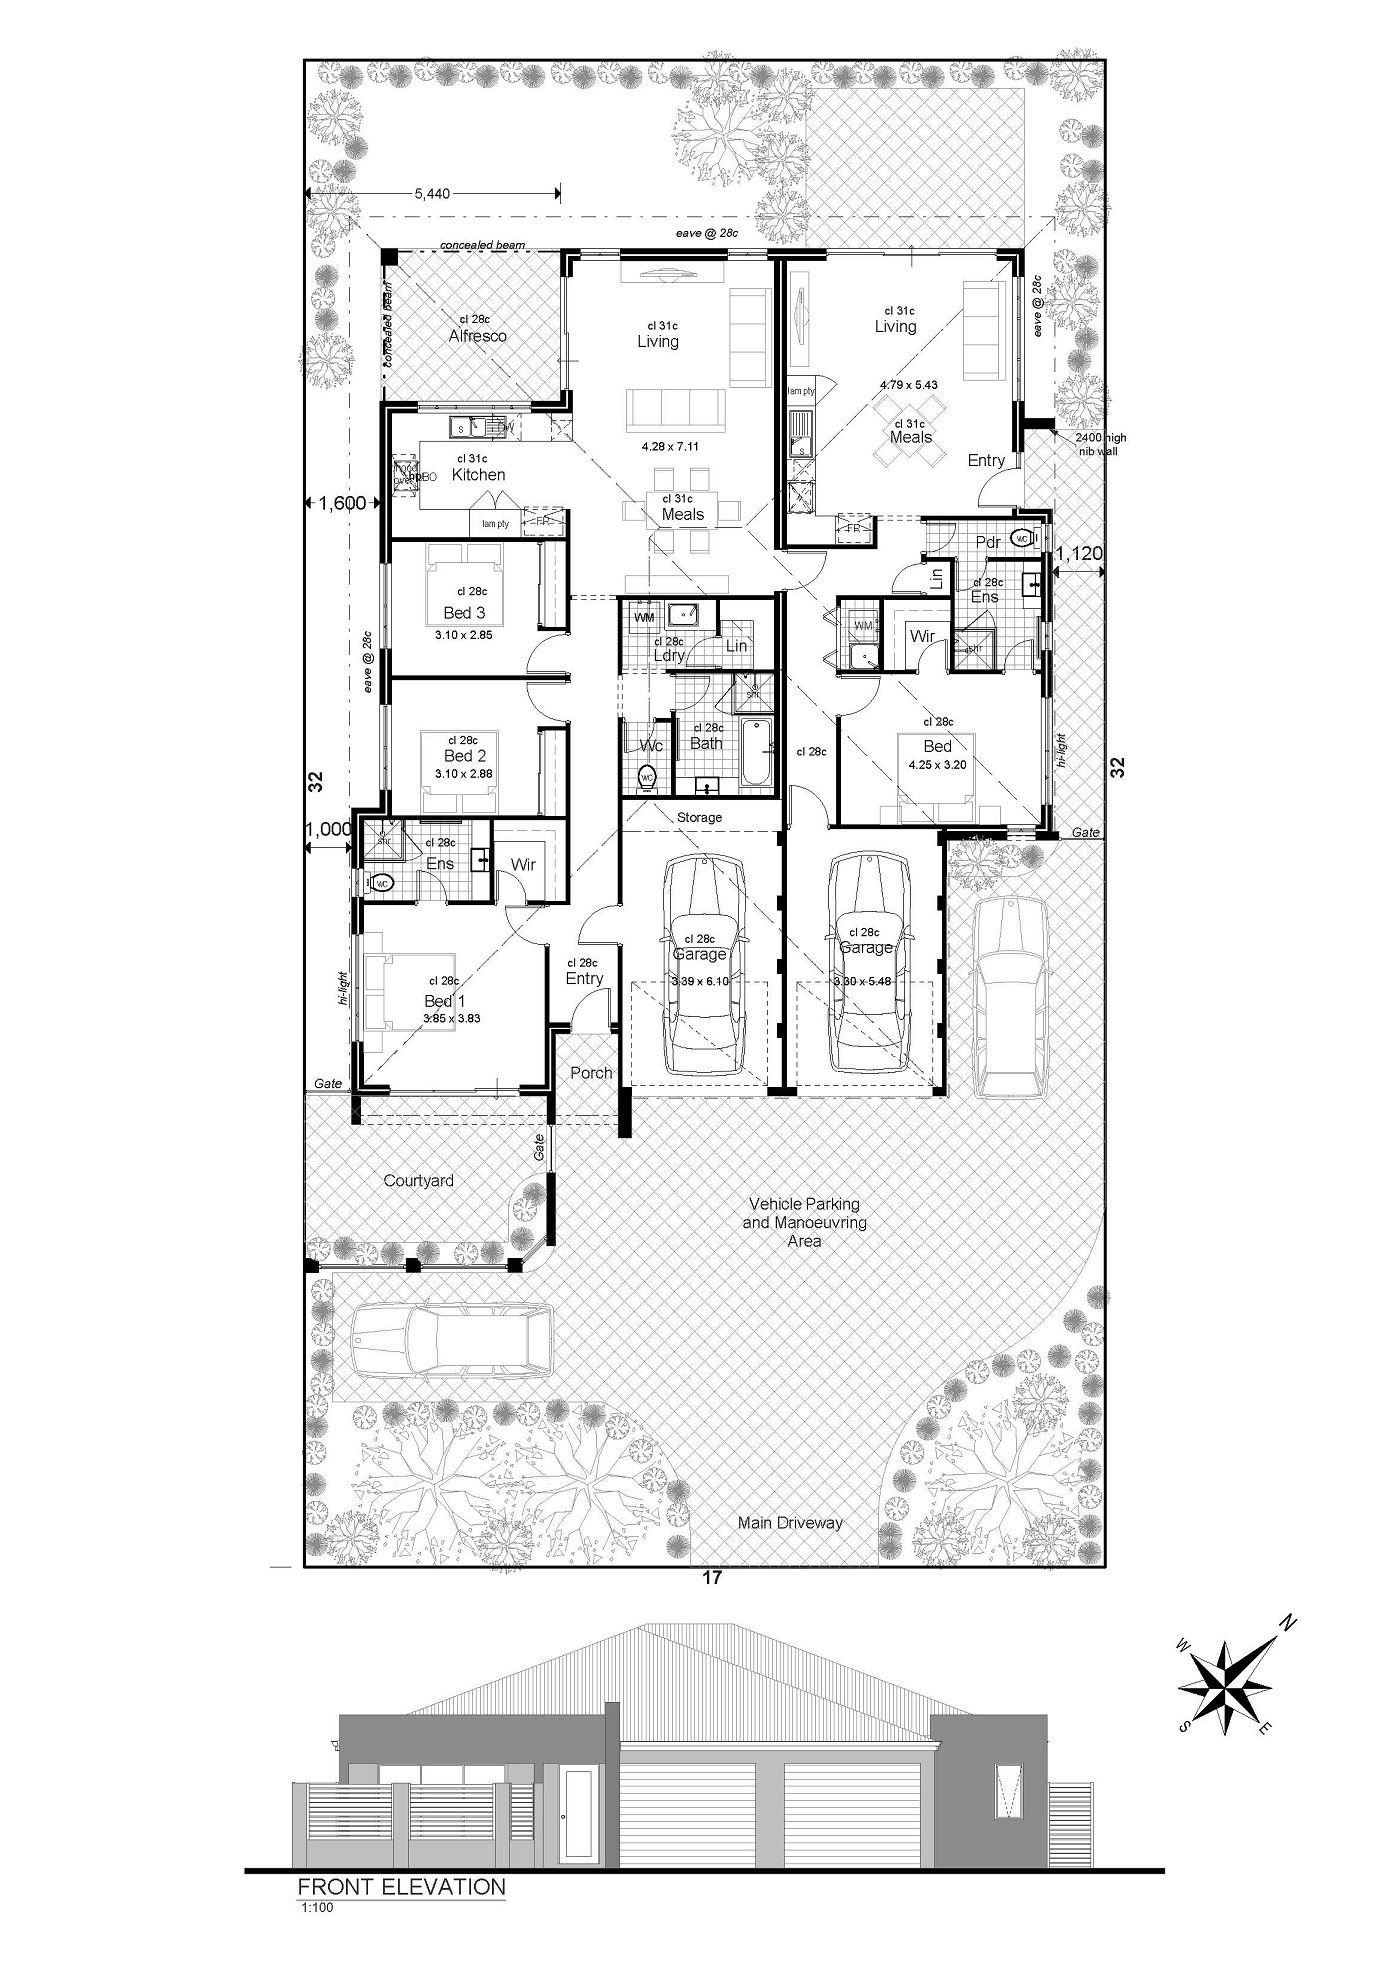 Designs Duplex Design House Plans Interior Design Living Room